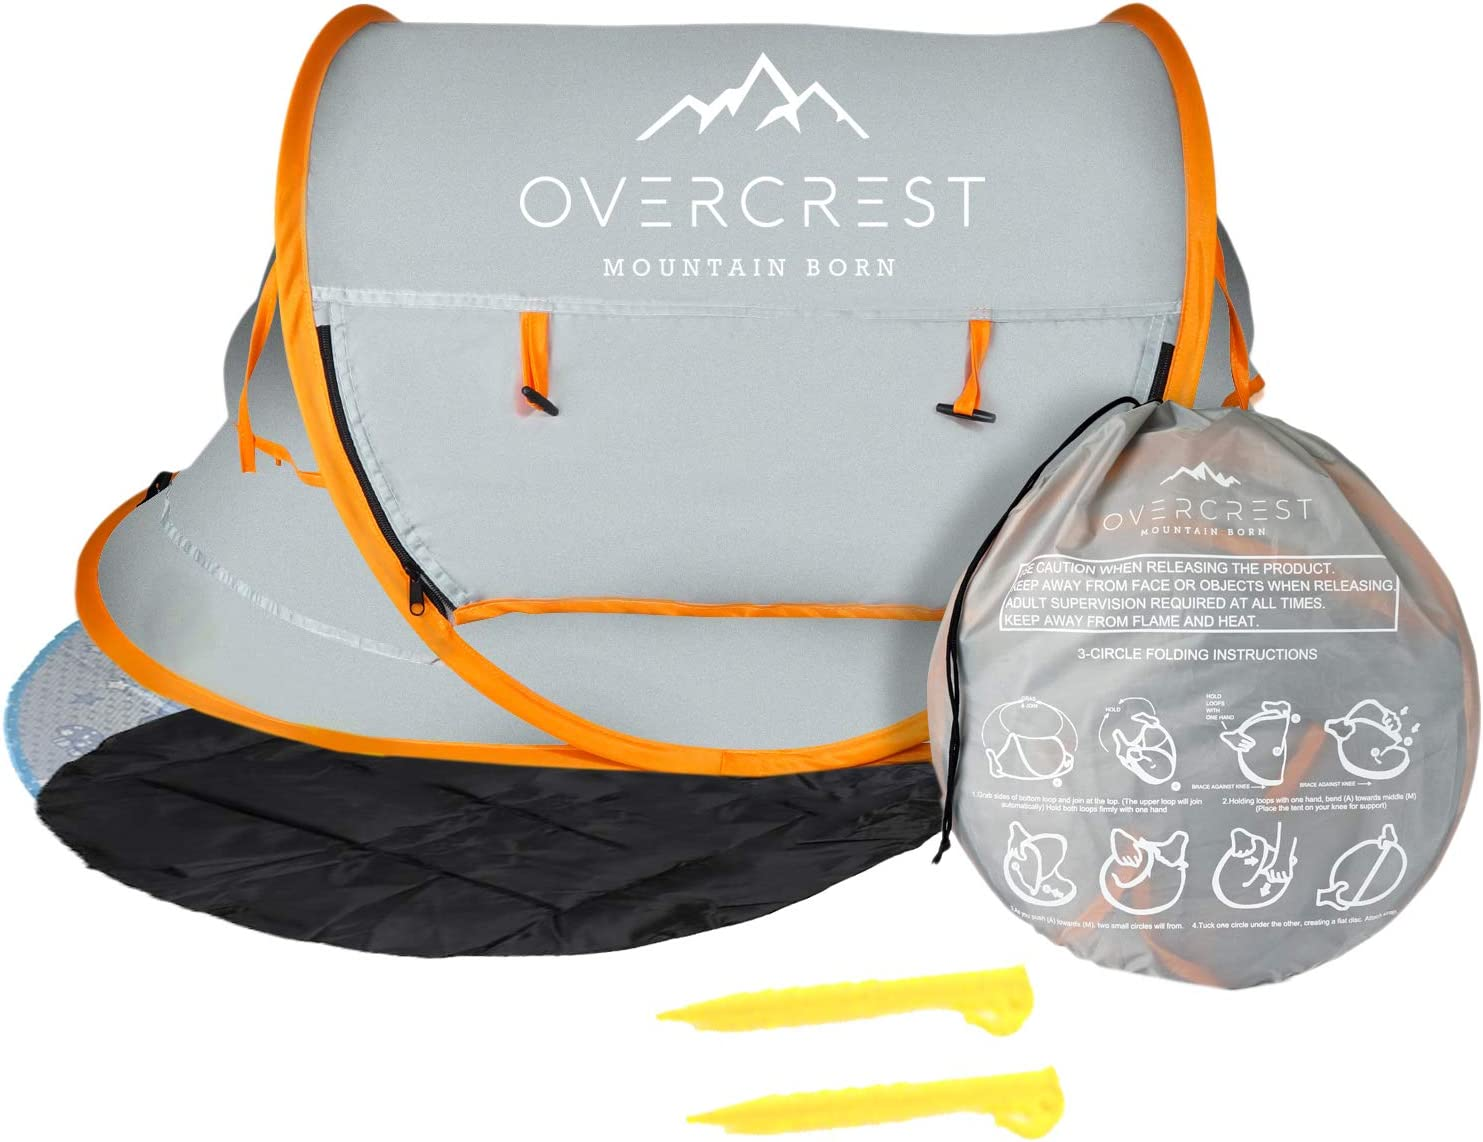 Overcrest Portable Beach Pop Up Tent